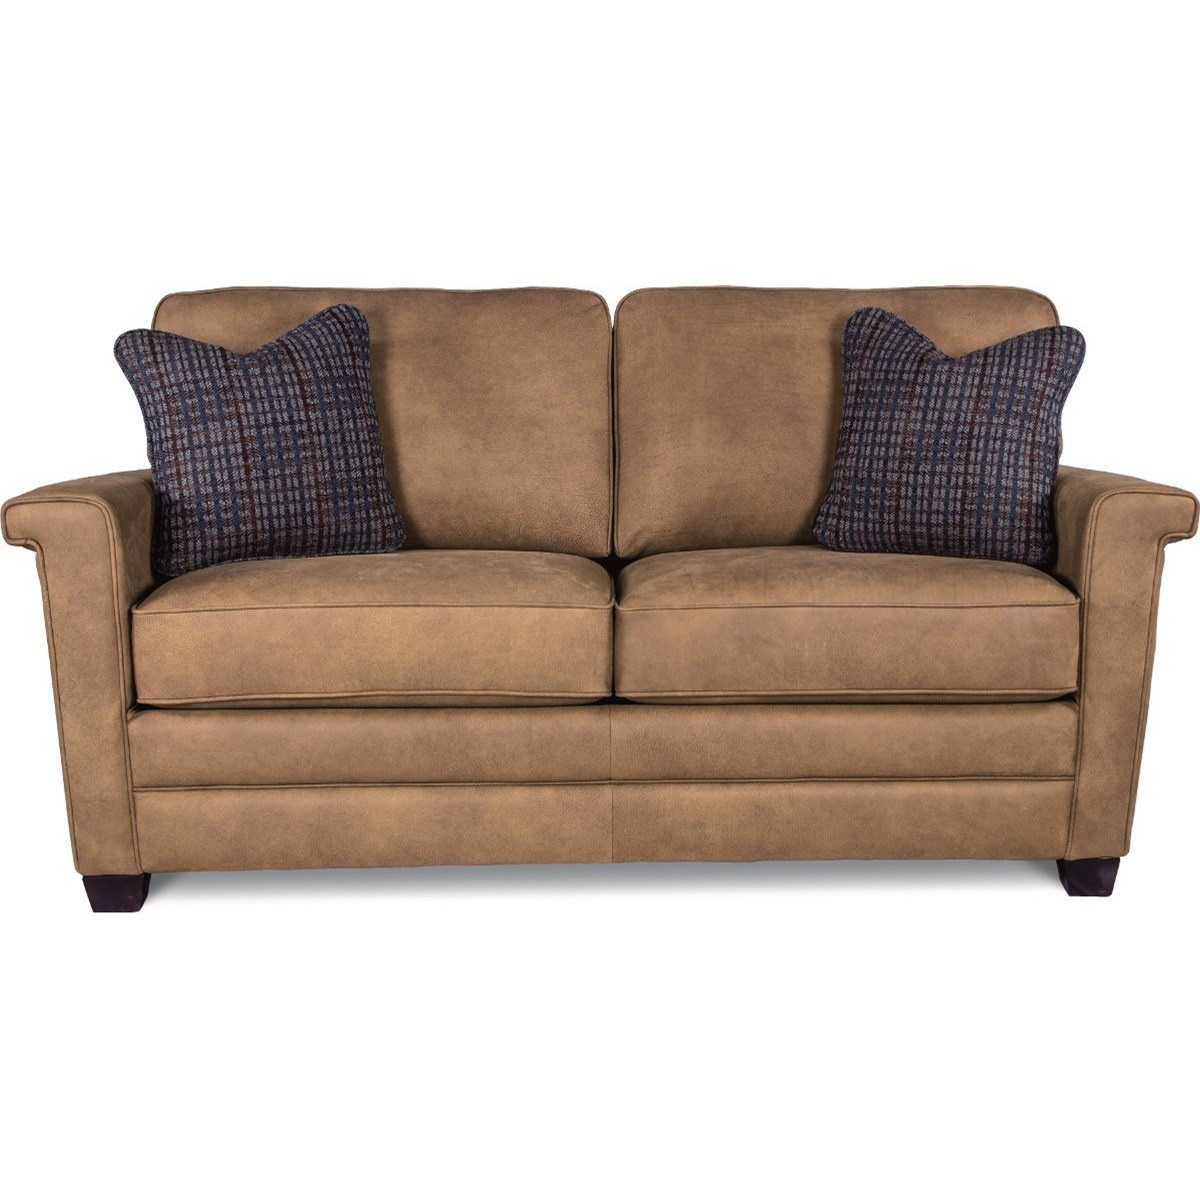 Bexley Supreme Comfort Full Sleep Sofa by La-Z-Boy at Sparks HomeStore